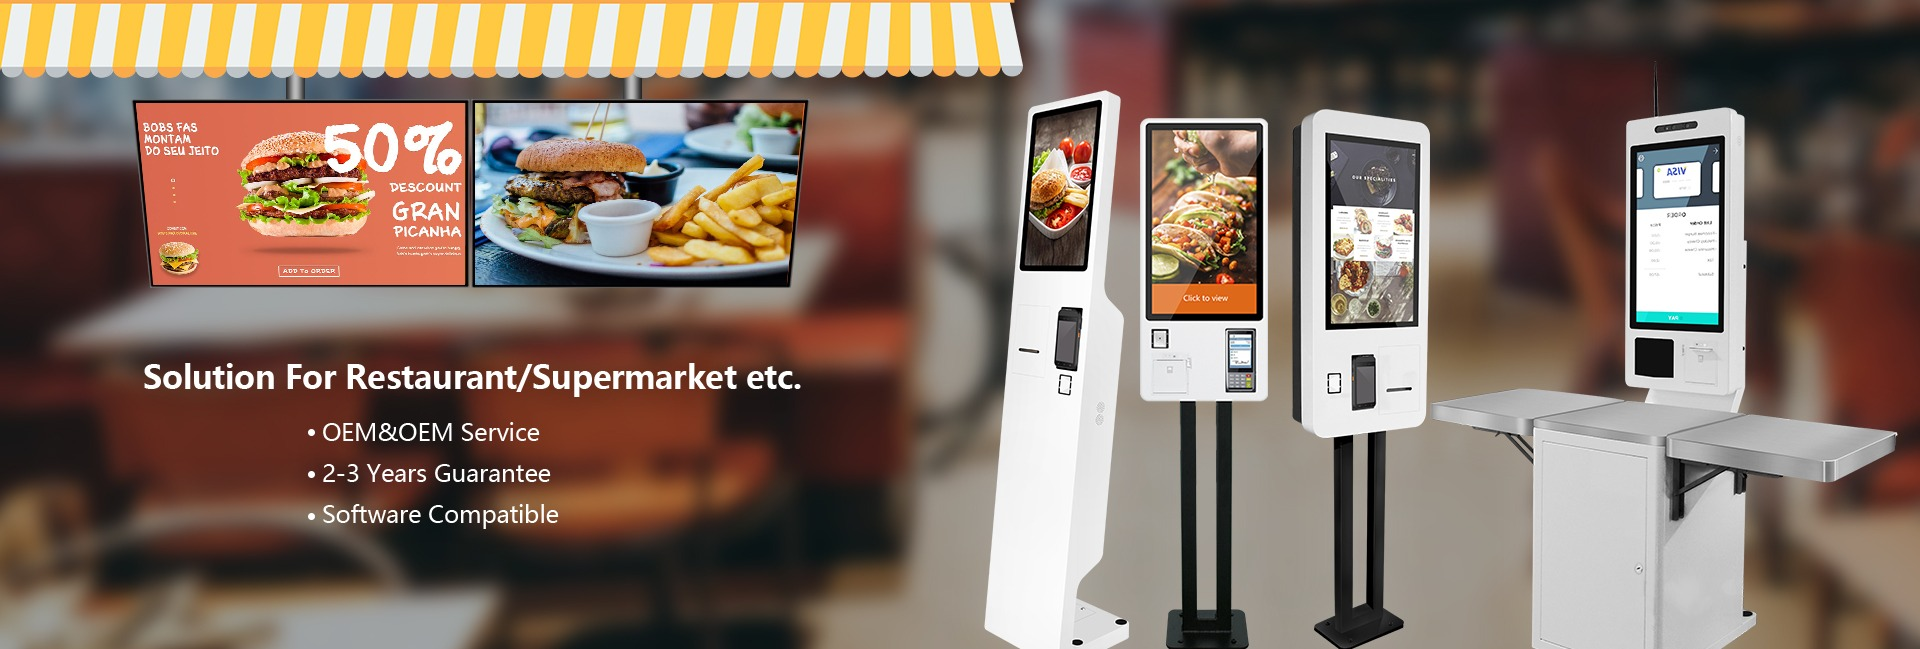 pos for pizza restaurant Digital Screens and self order kiosk